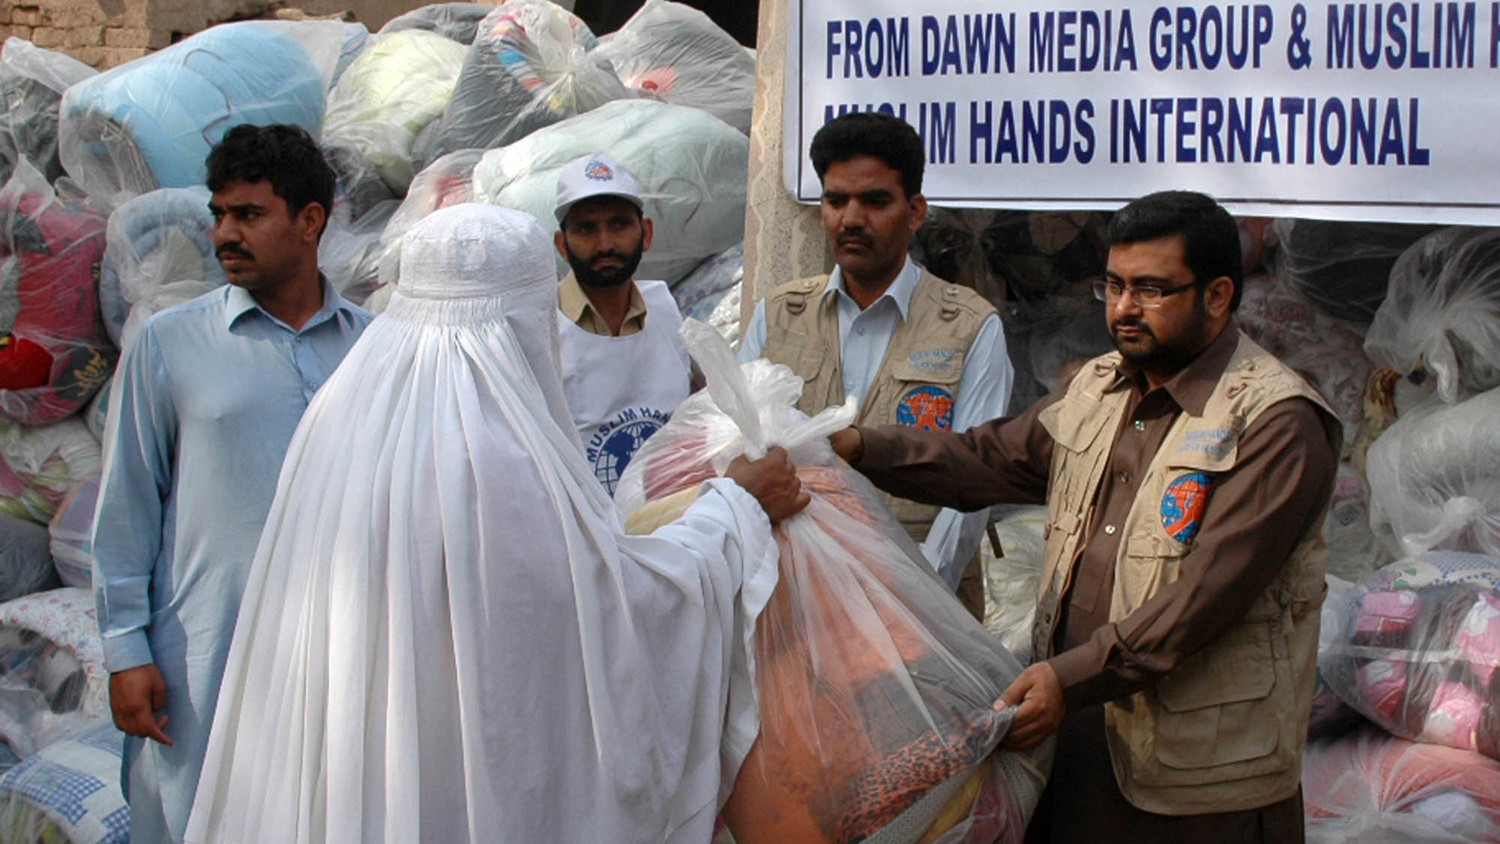 Aid distribution of food and non-food items in Khyber Pakhtunkhwa (KP) Province, Pakistan